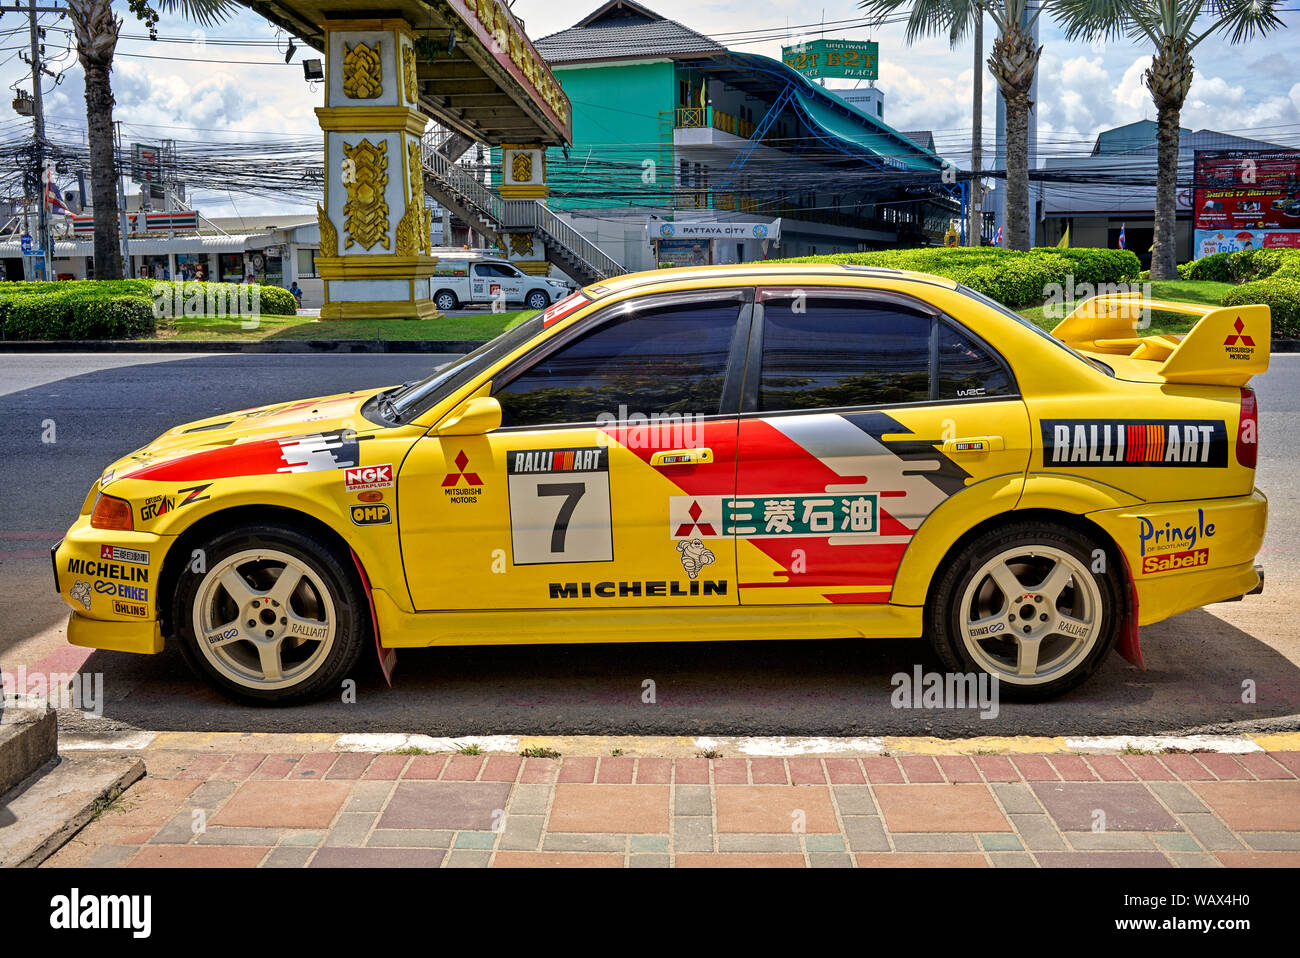 Mitsubishi Lancer yellow car. Race prepared modified sports saloon Stock Photo